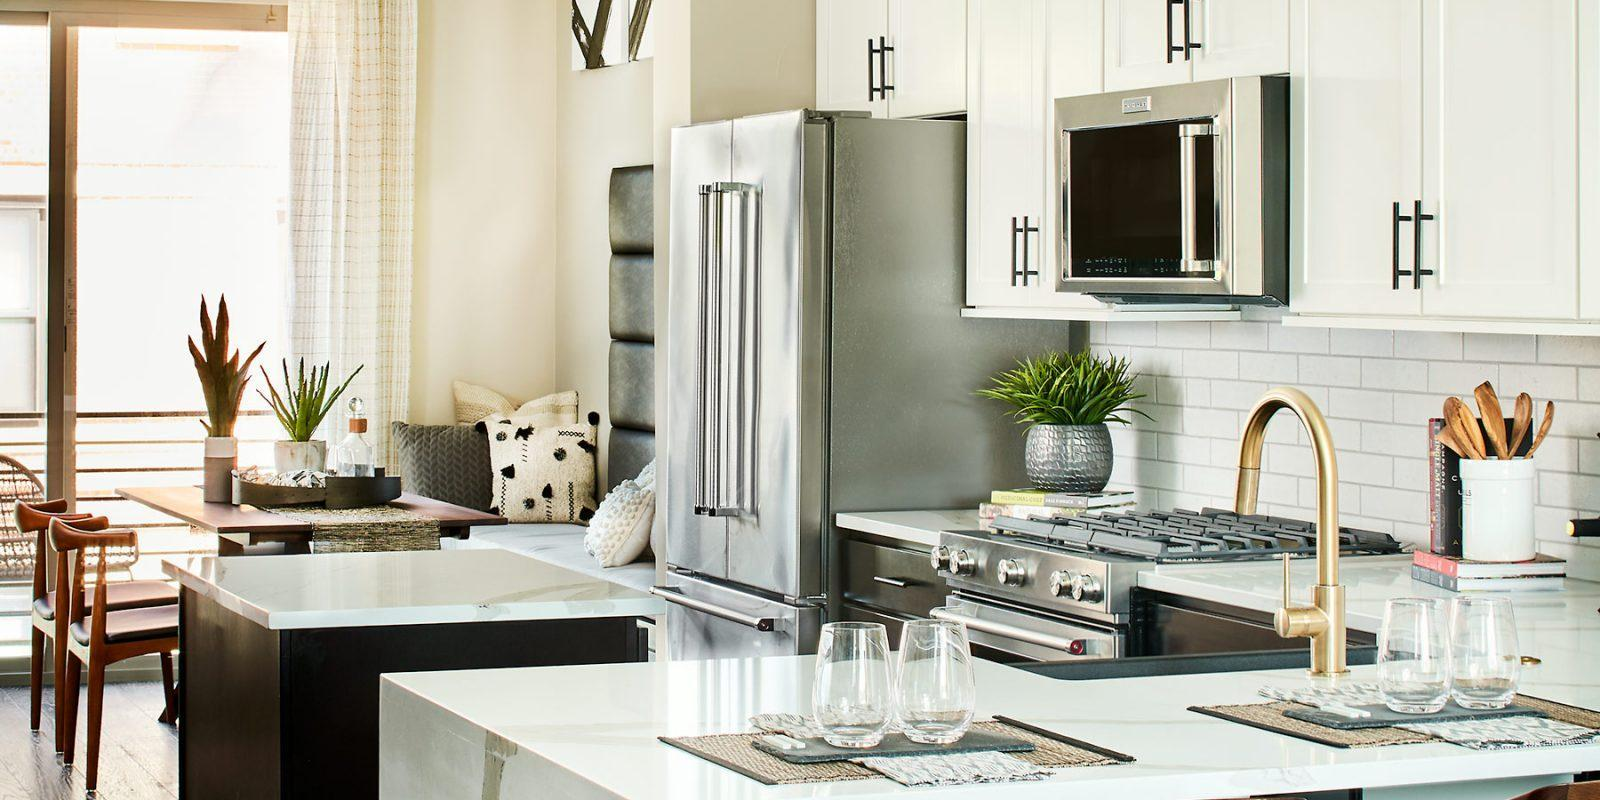 Kitchen featured in the A Unit By Koelbel Urban Homes in Denver, CO